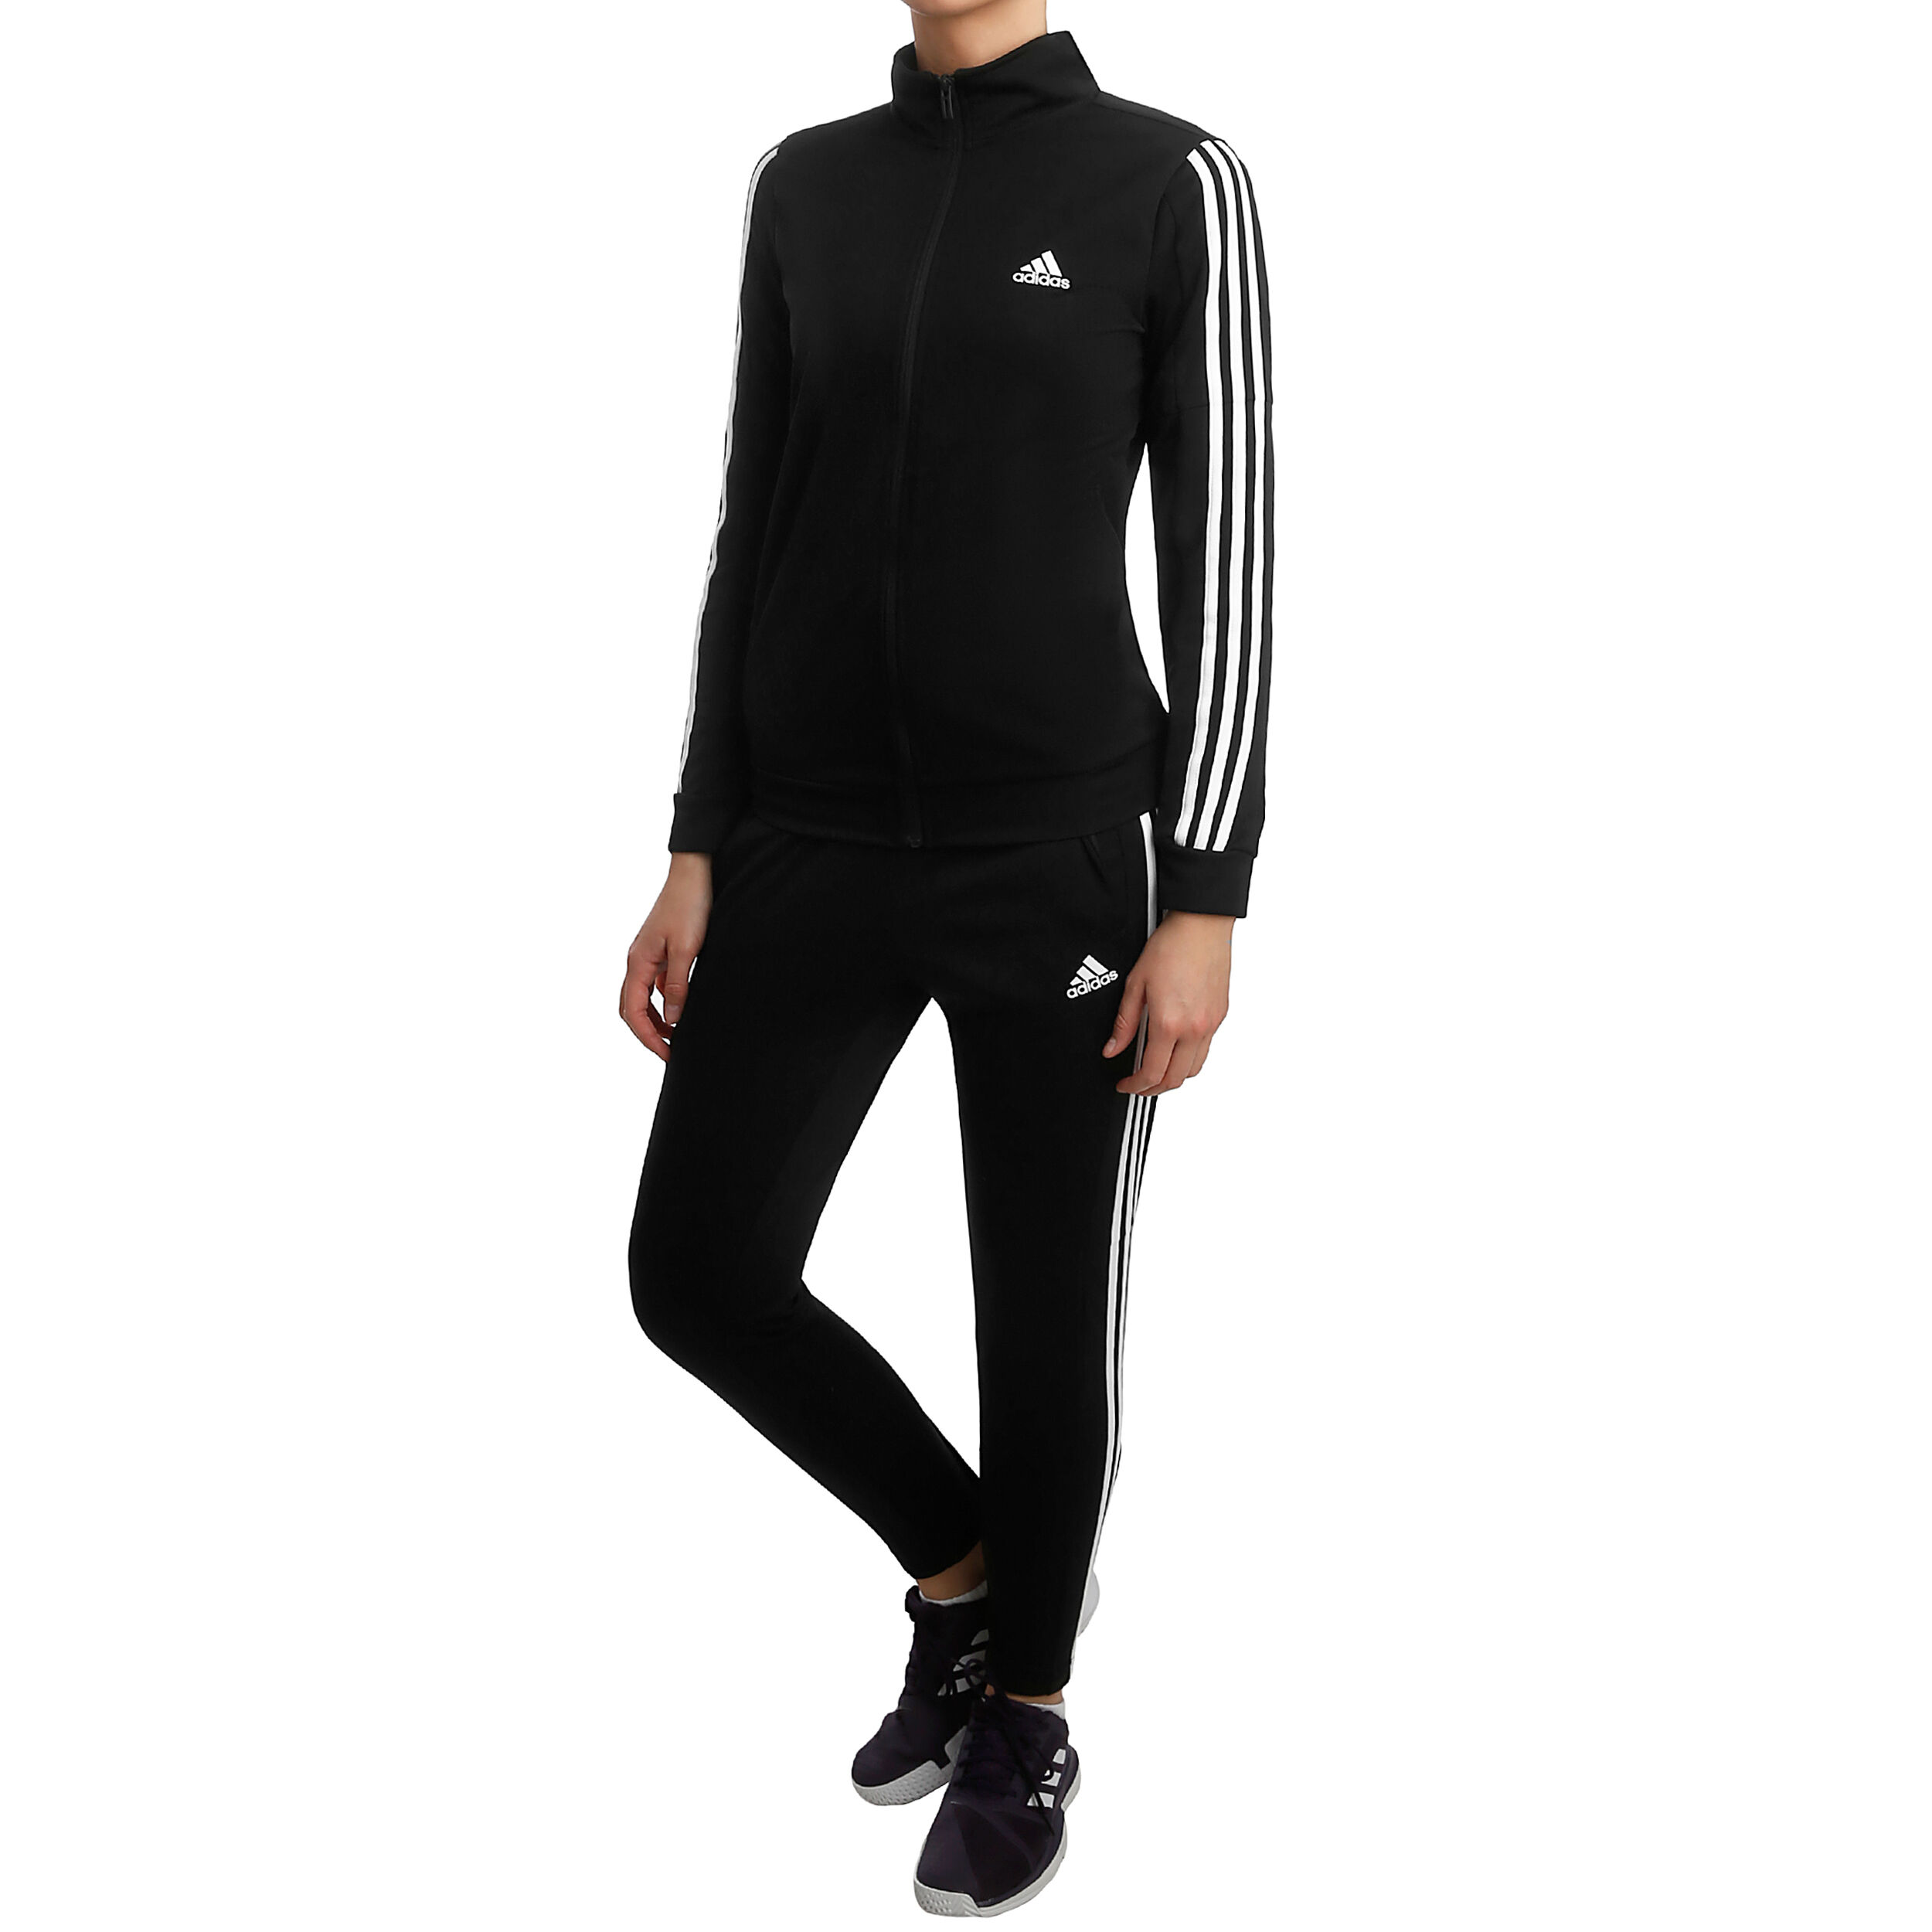 adidas Team Sports Trainingspak Dames Zwart, Wit online